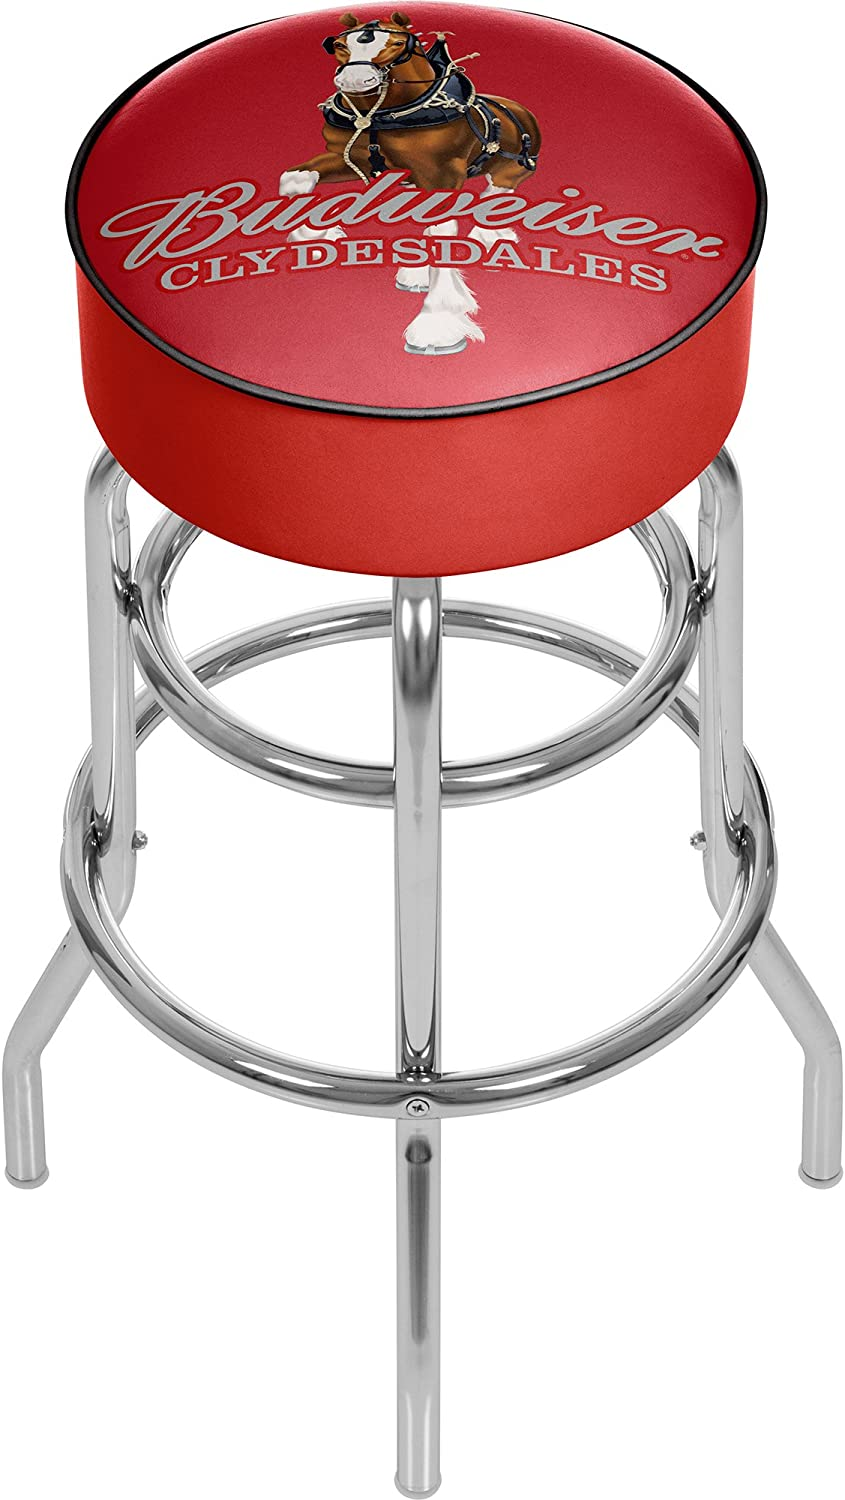 Trademark Gameroom Budweiser Padded Swivel Bar Stool - Clydesdale Red AB1000-CLY-R